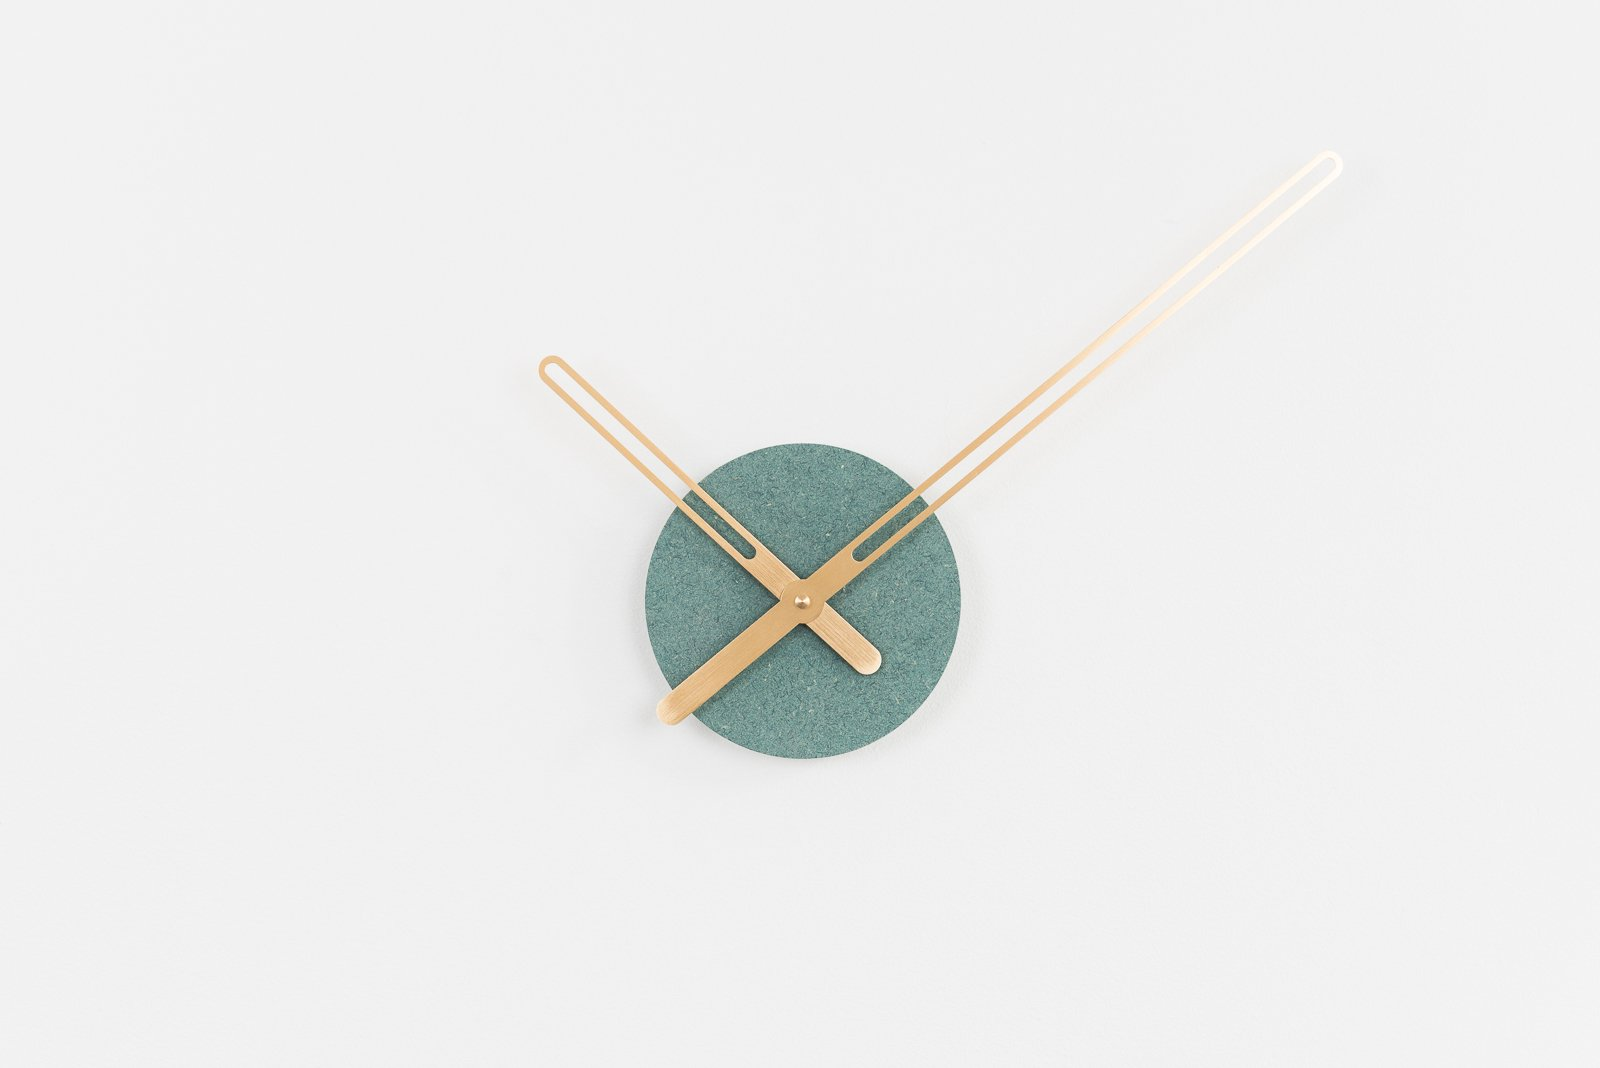 Sweep Wall Clock, The Green Ocher Series with Brass Clock Hands, Minimalist Scandinavian Design Wall Decor Clock by Christopher Nordahl Konings